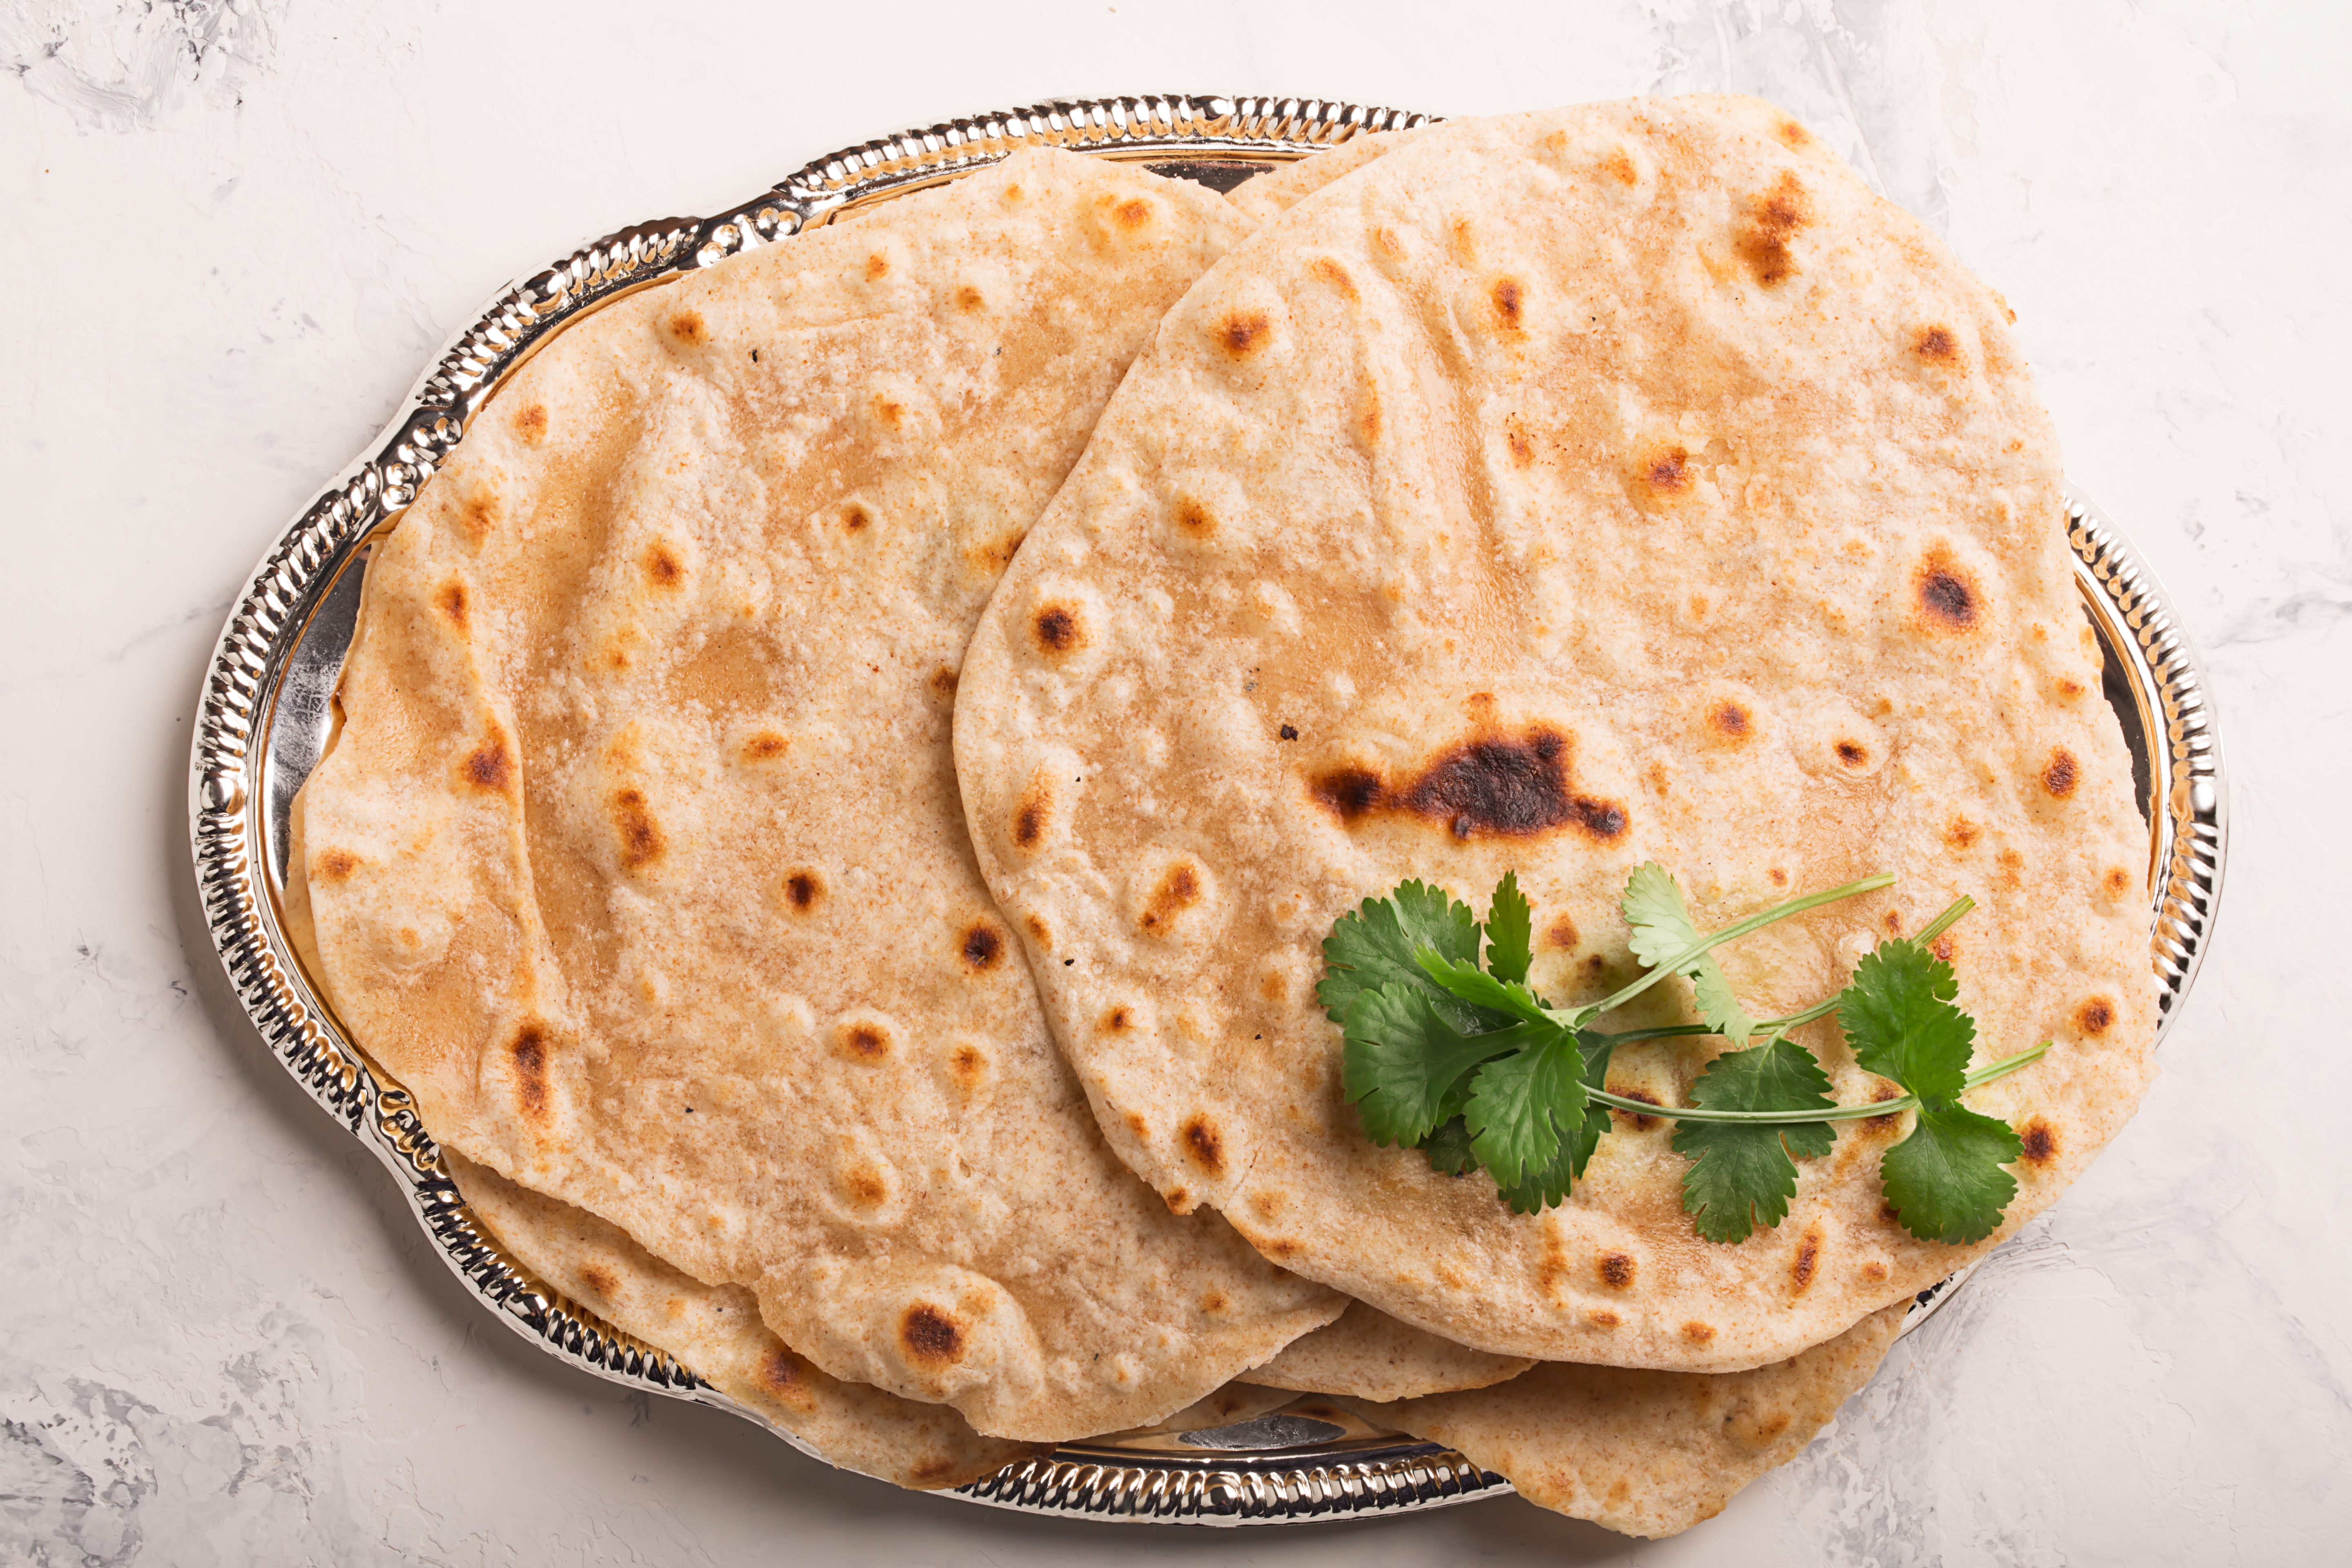 A plate of whole wheat chapattis